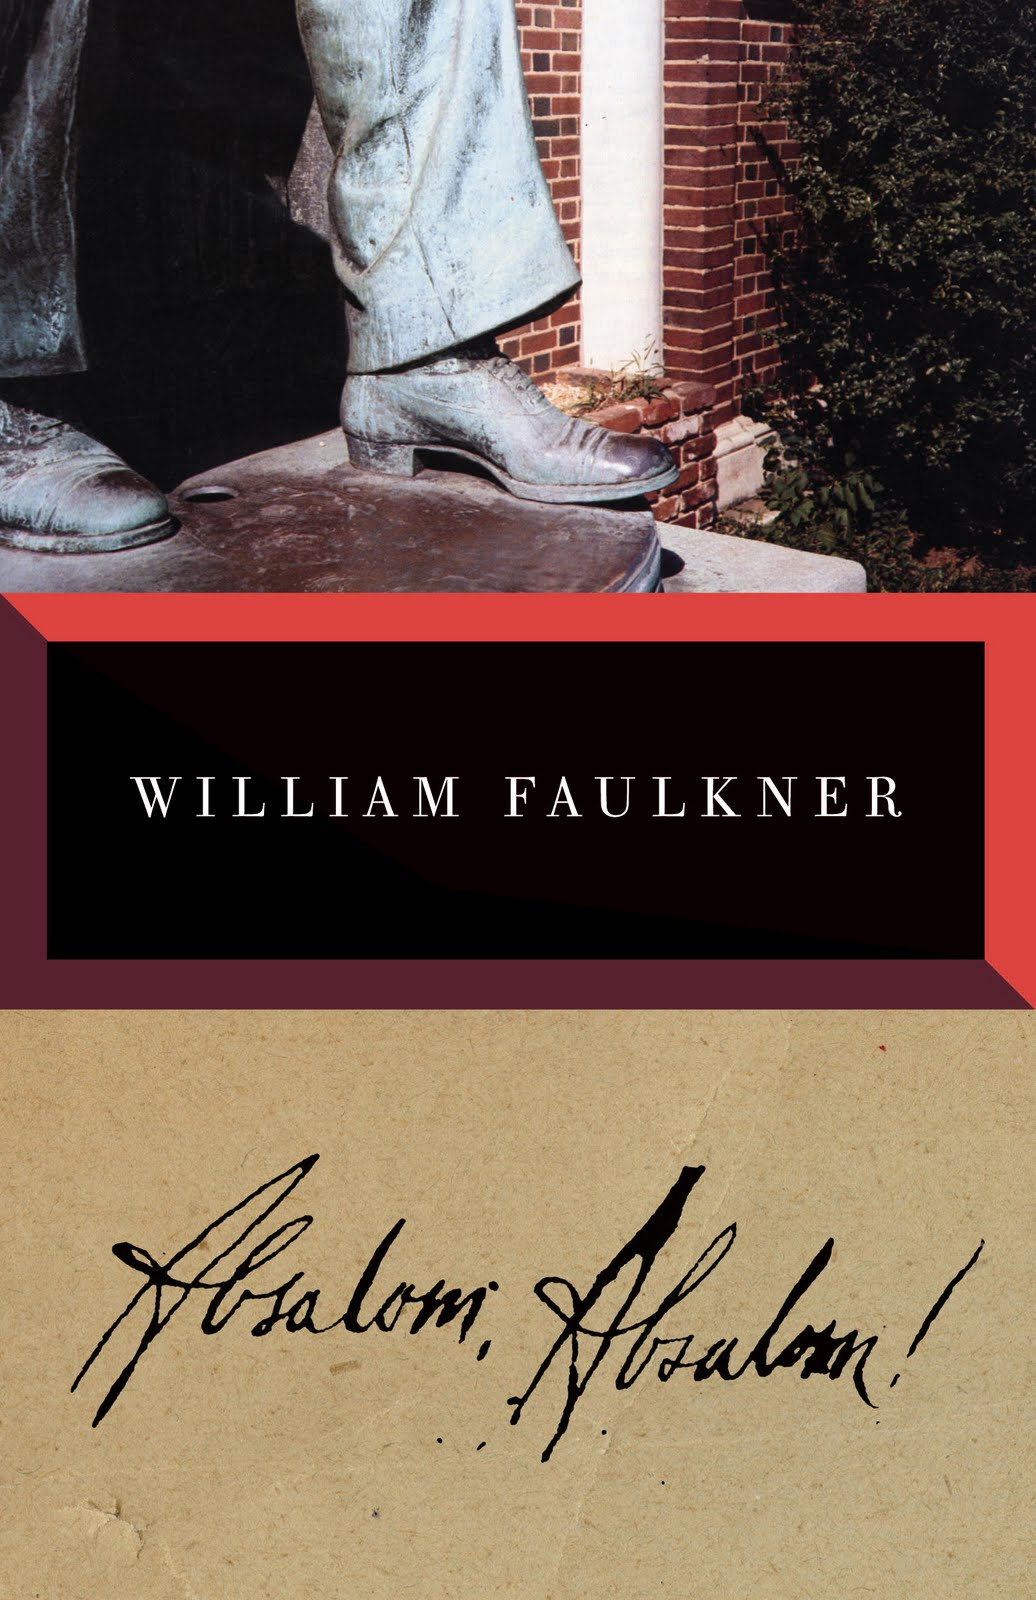 a brief look into the life and accomplishments of william faulkner